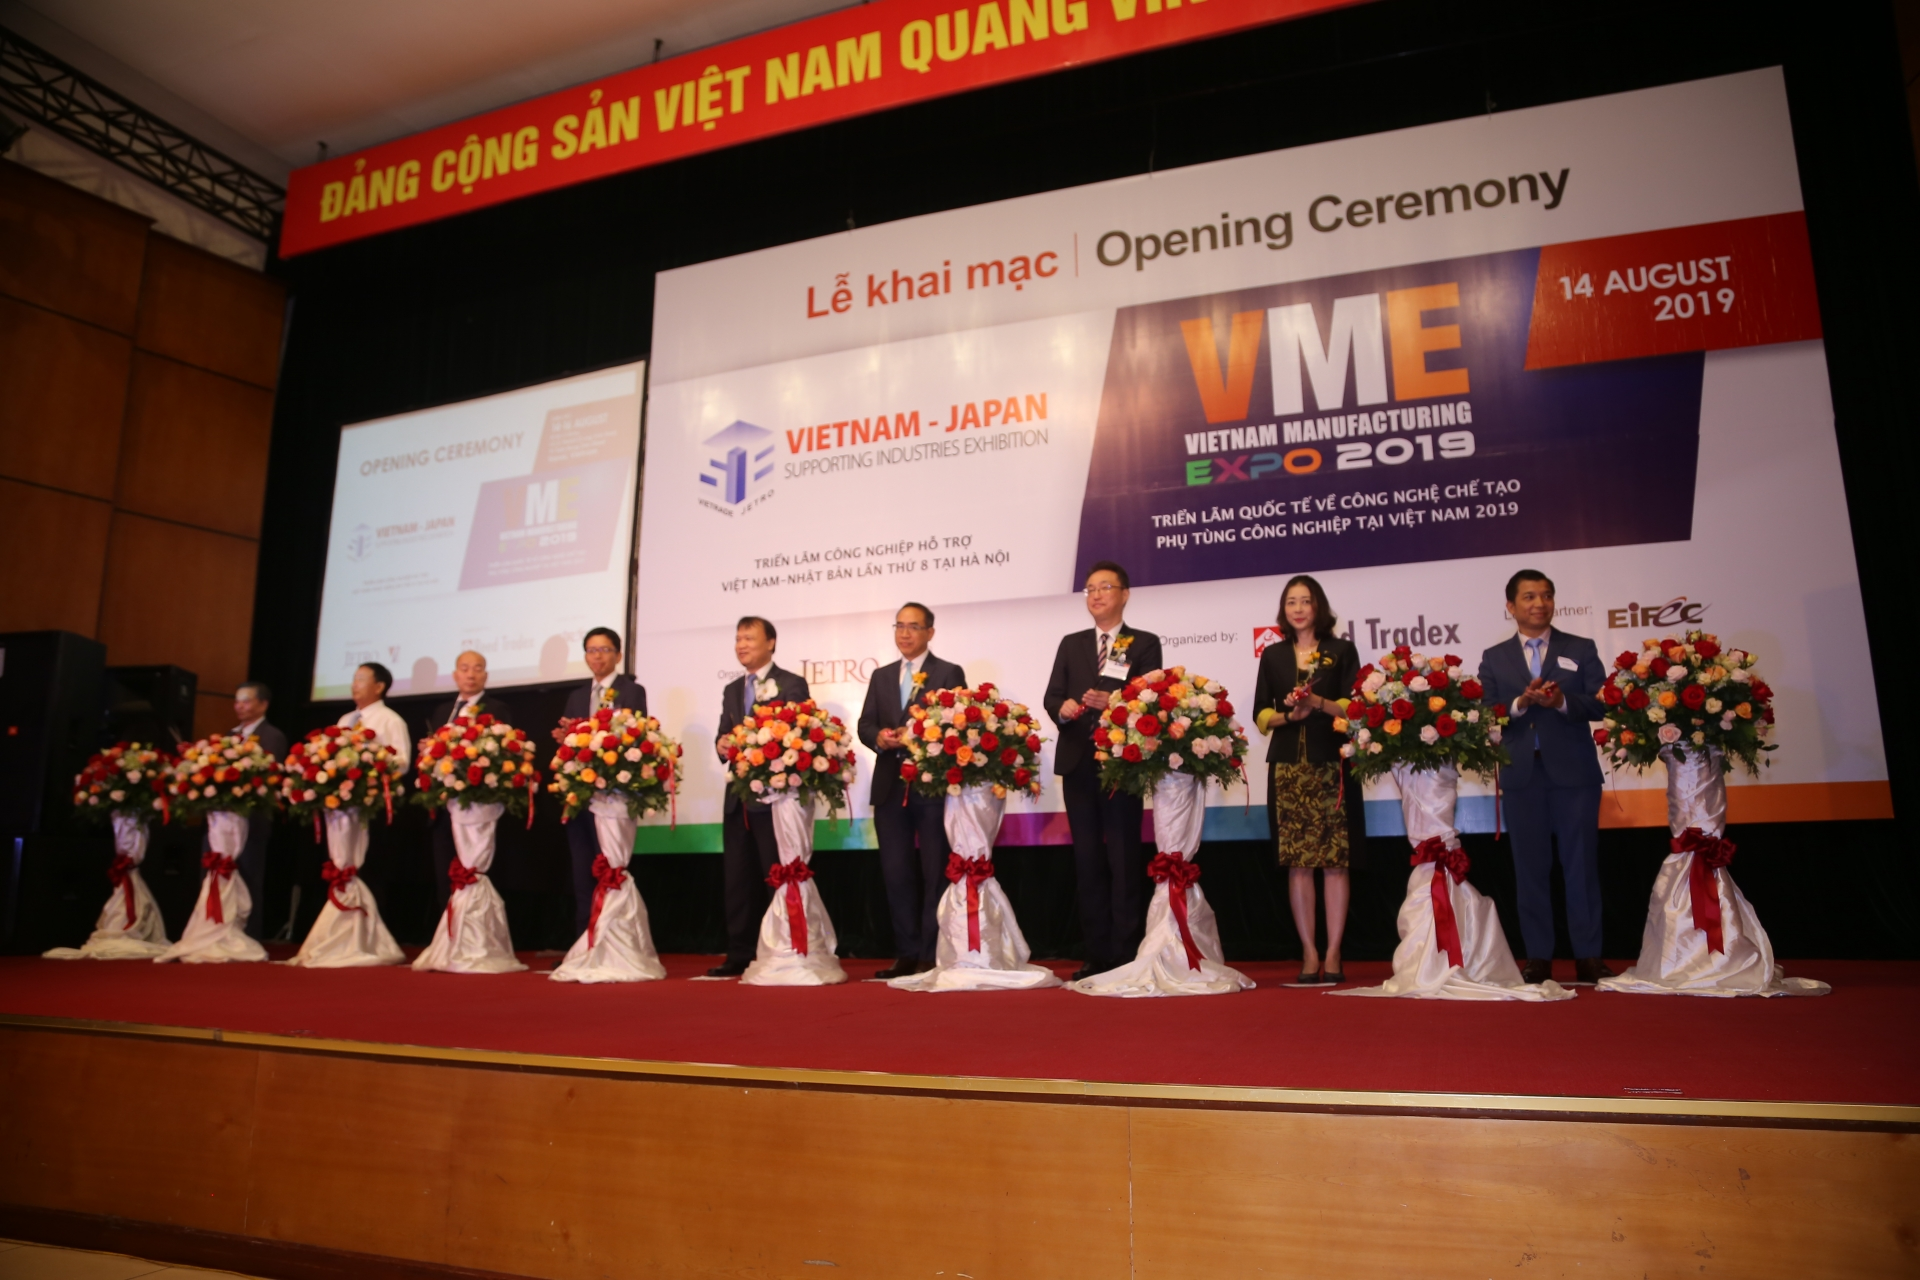 International exhibitions on supporting industry open in Hanoi